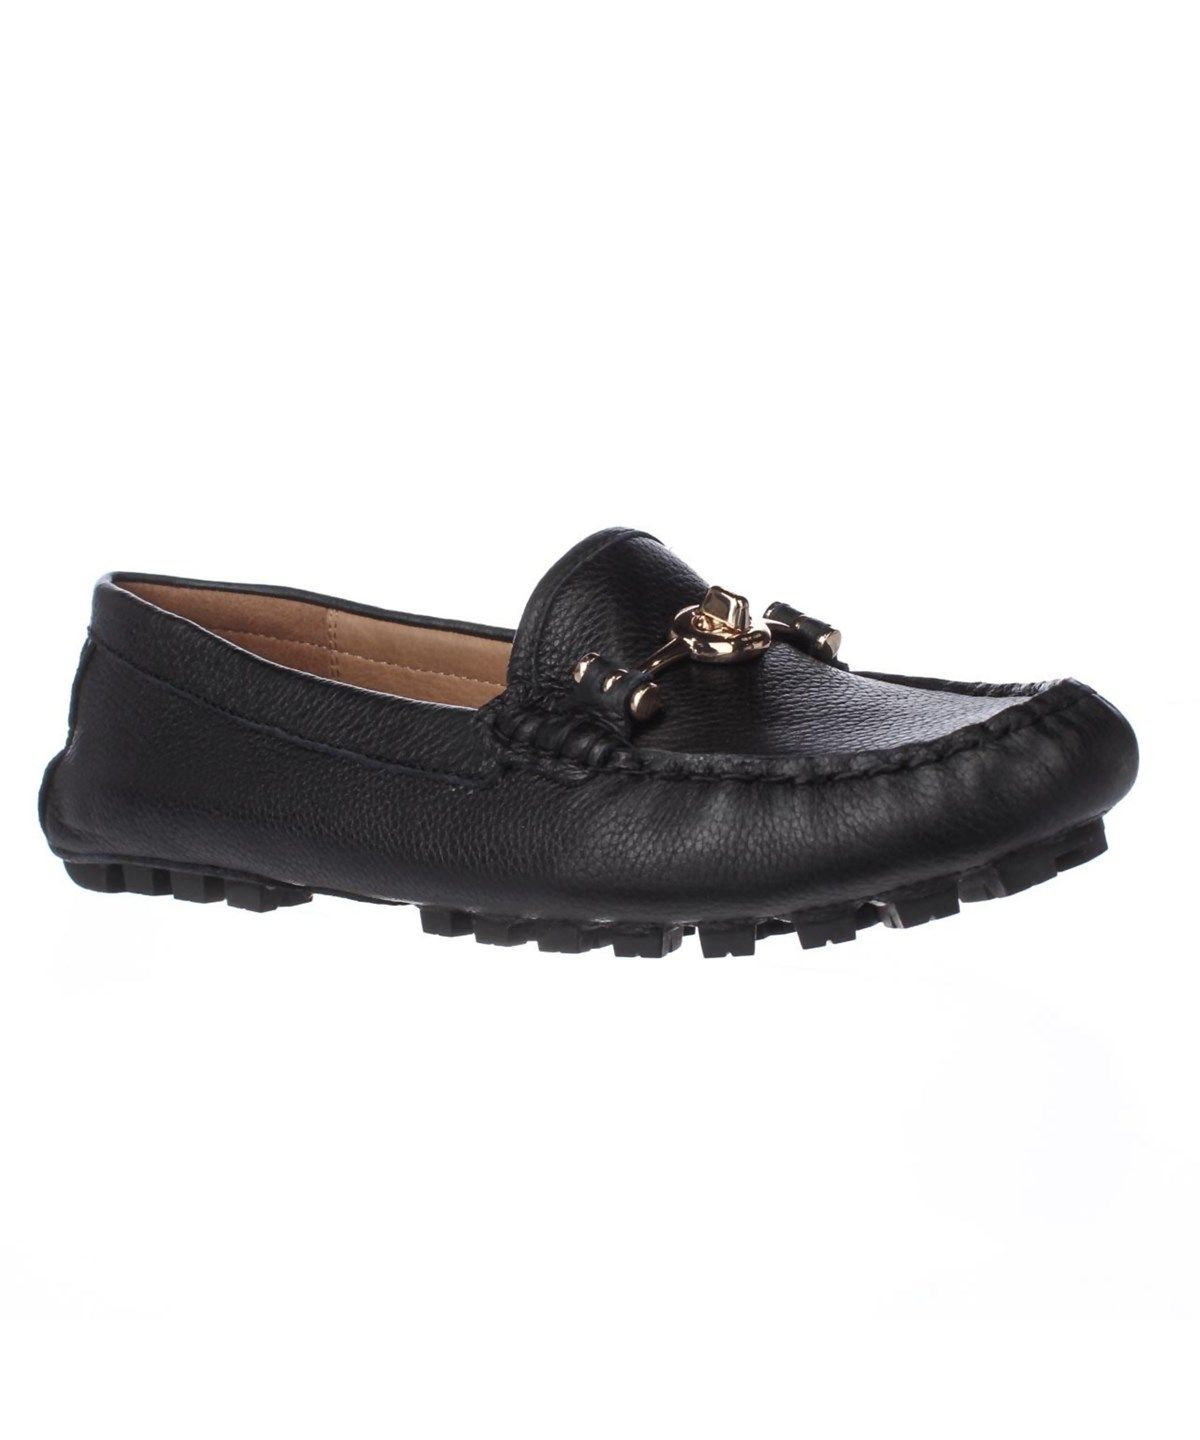 COACH Arlene Loafers'. #coach #shoes #loafers